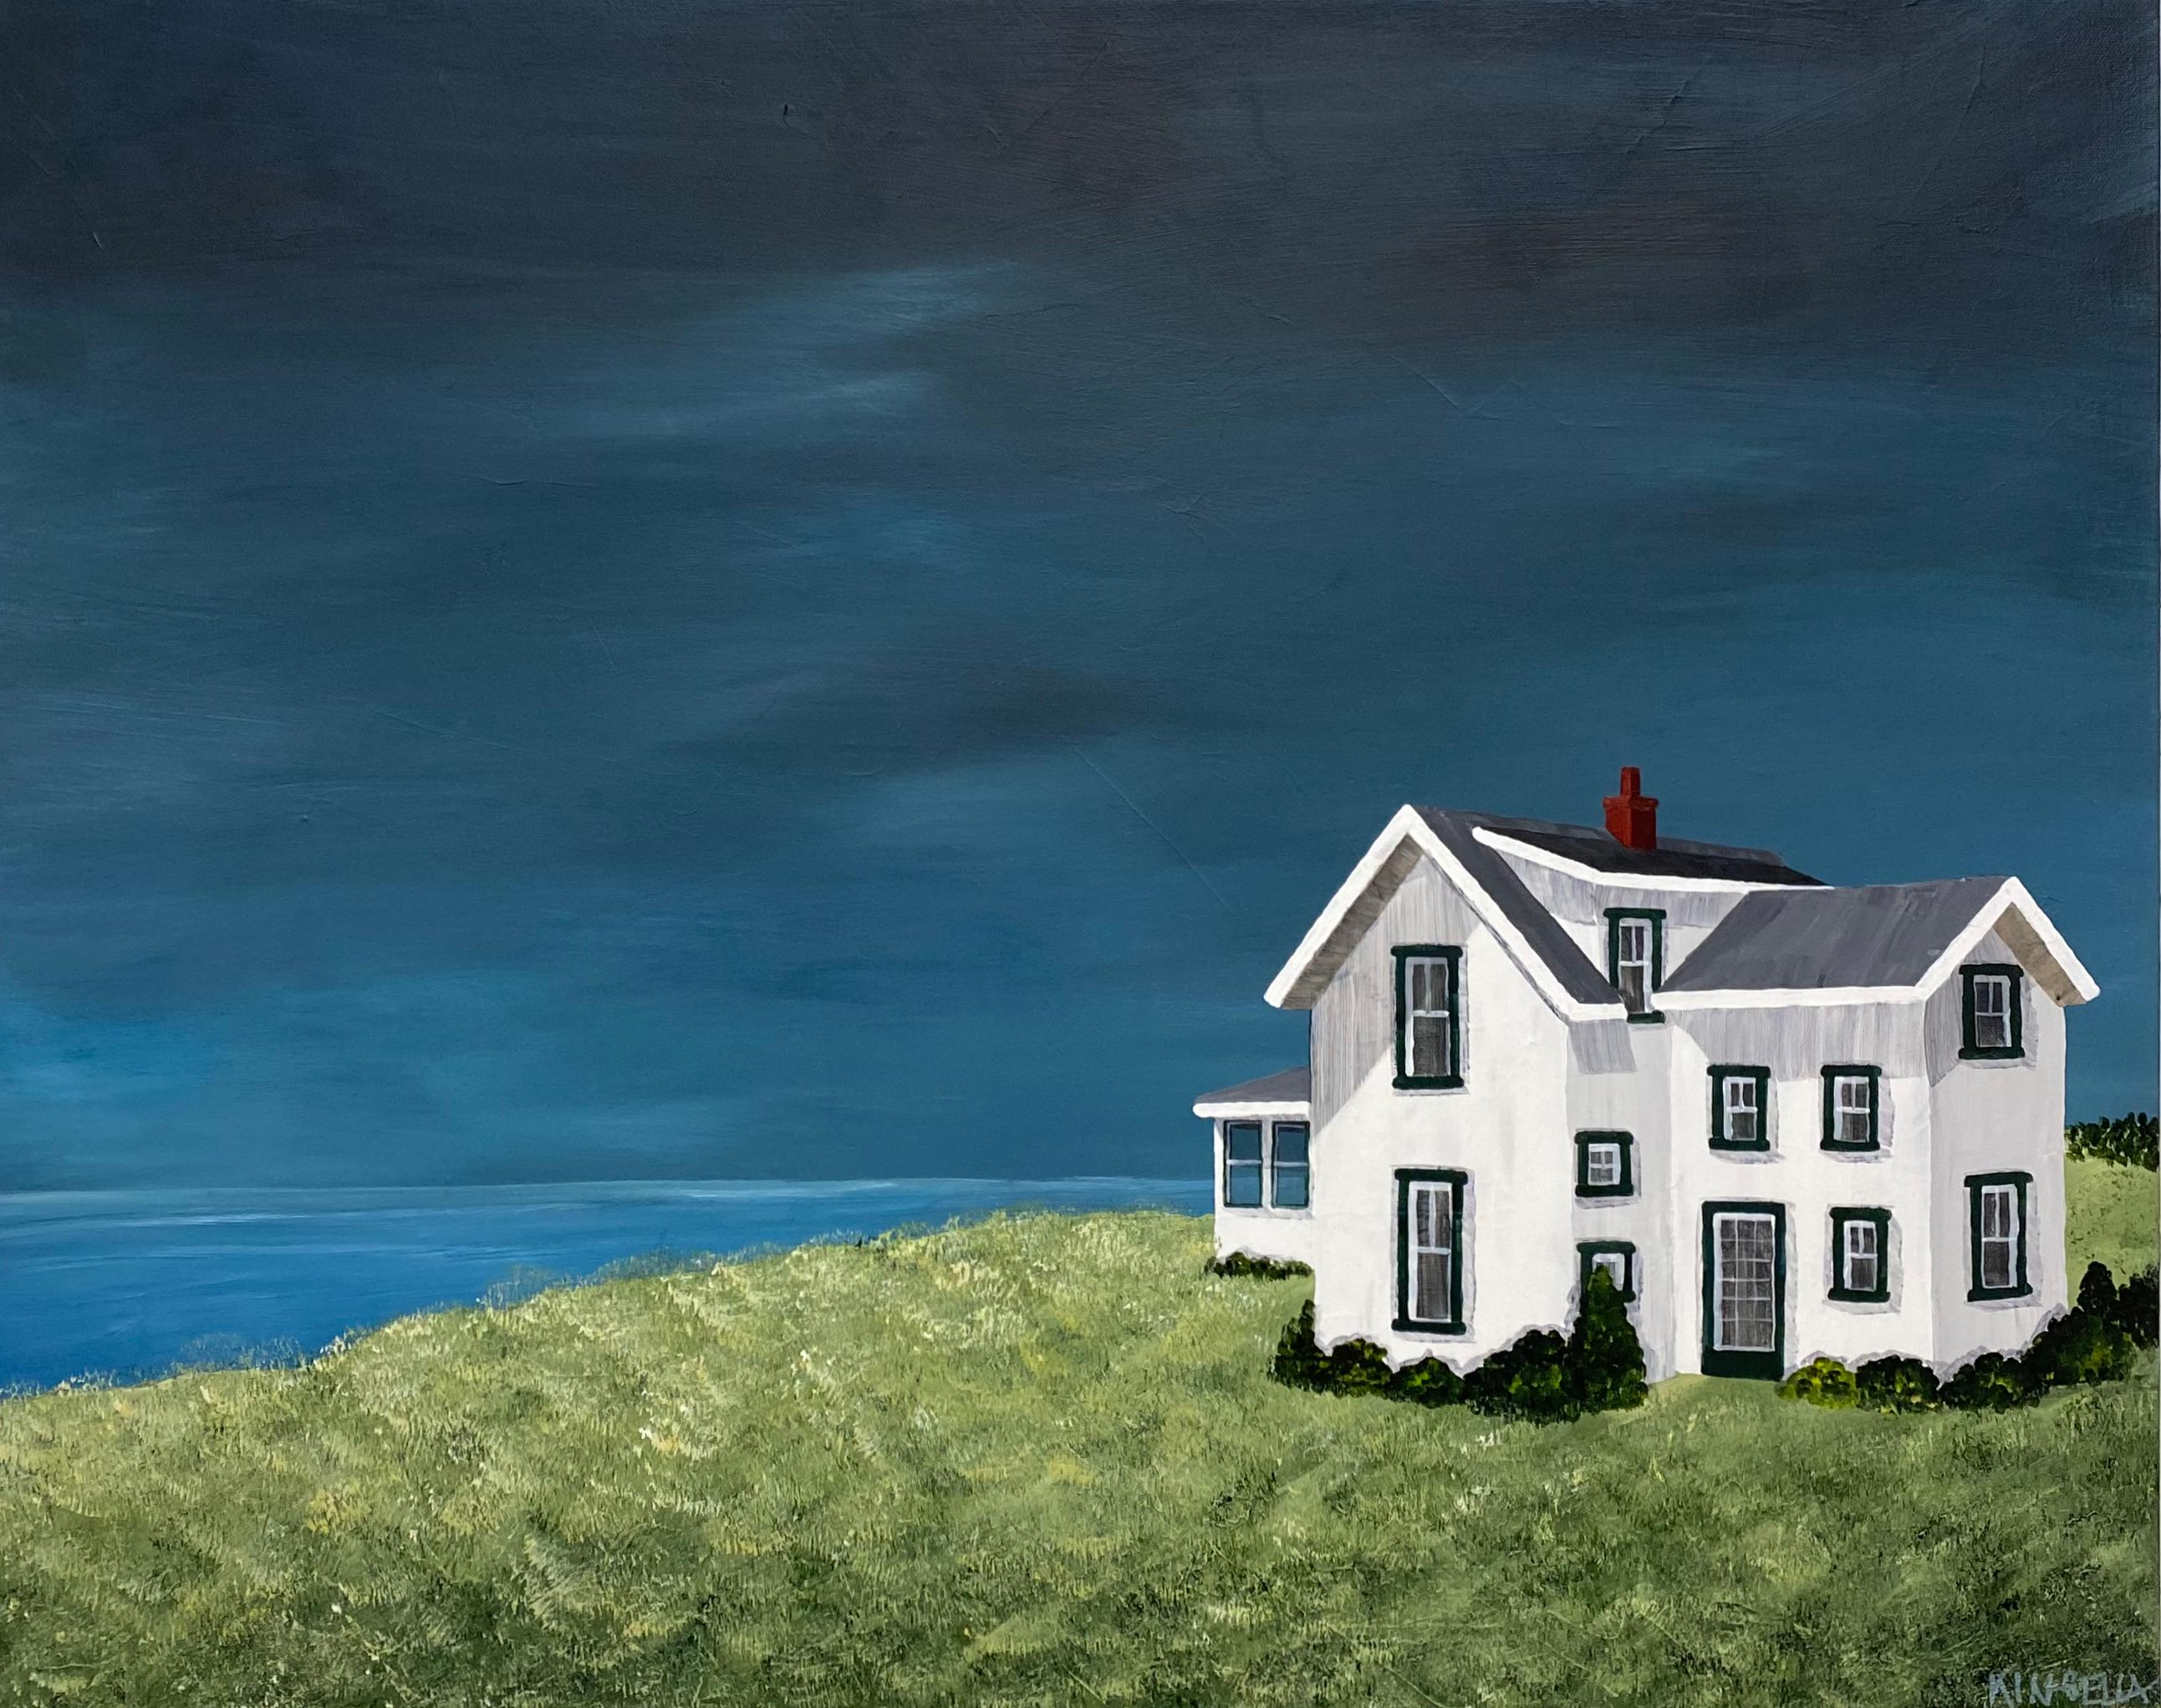 Summerplace by Susan Kinsella, Acrylic on Canvas Horizontal Landscape Painting